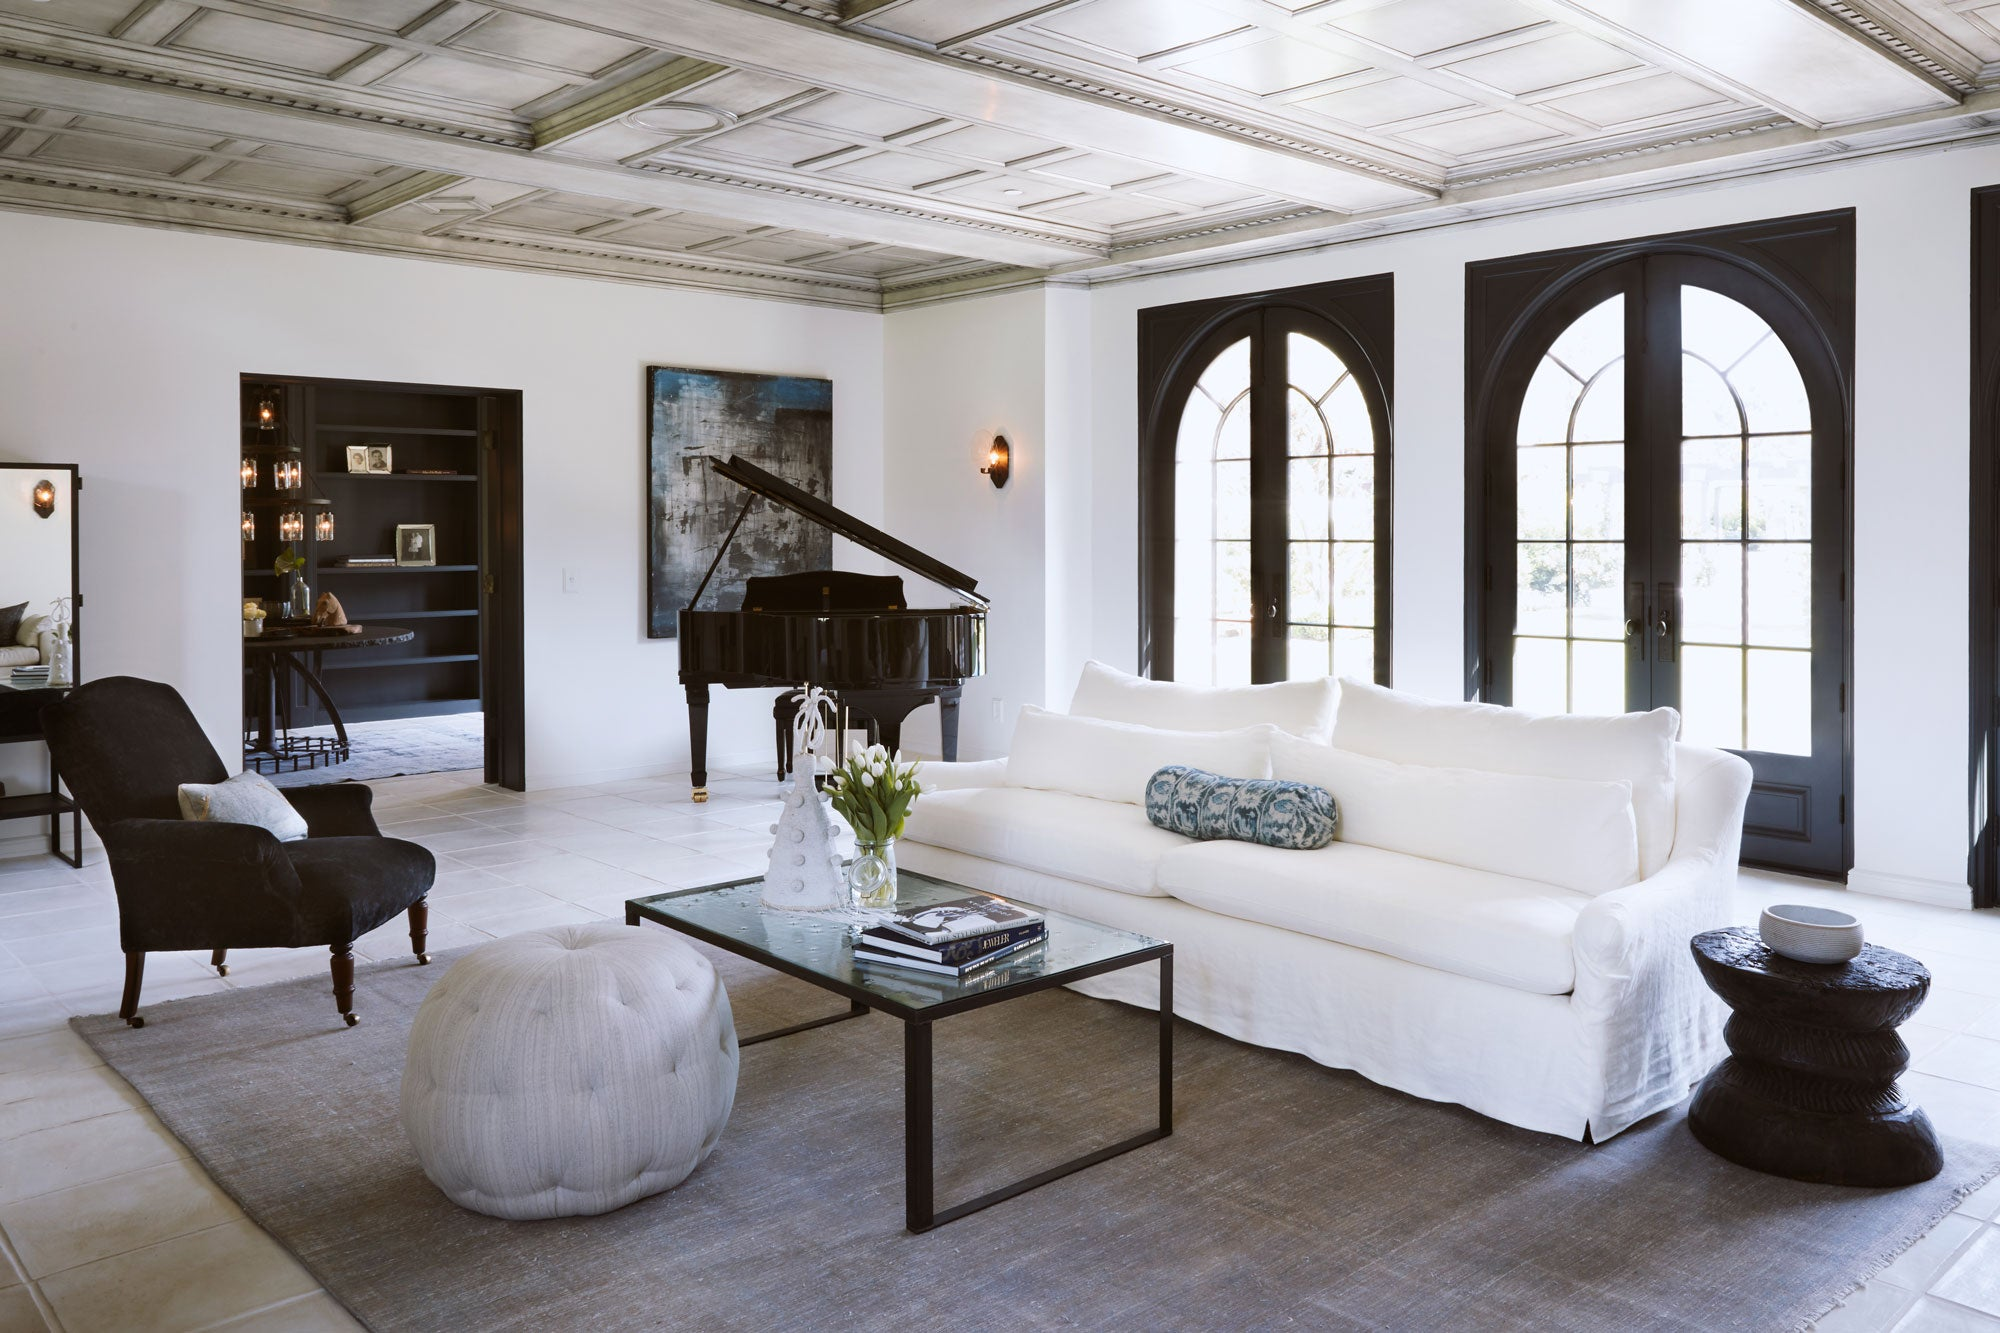 living room with white sofa, lounge chair and grand piano